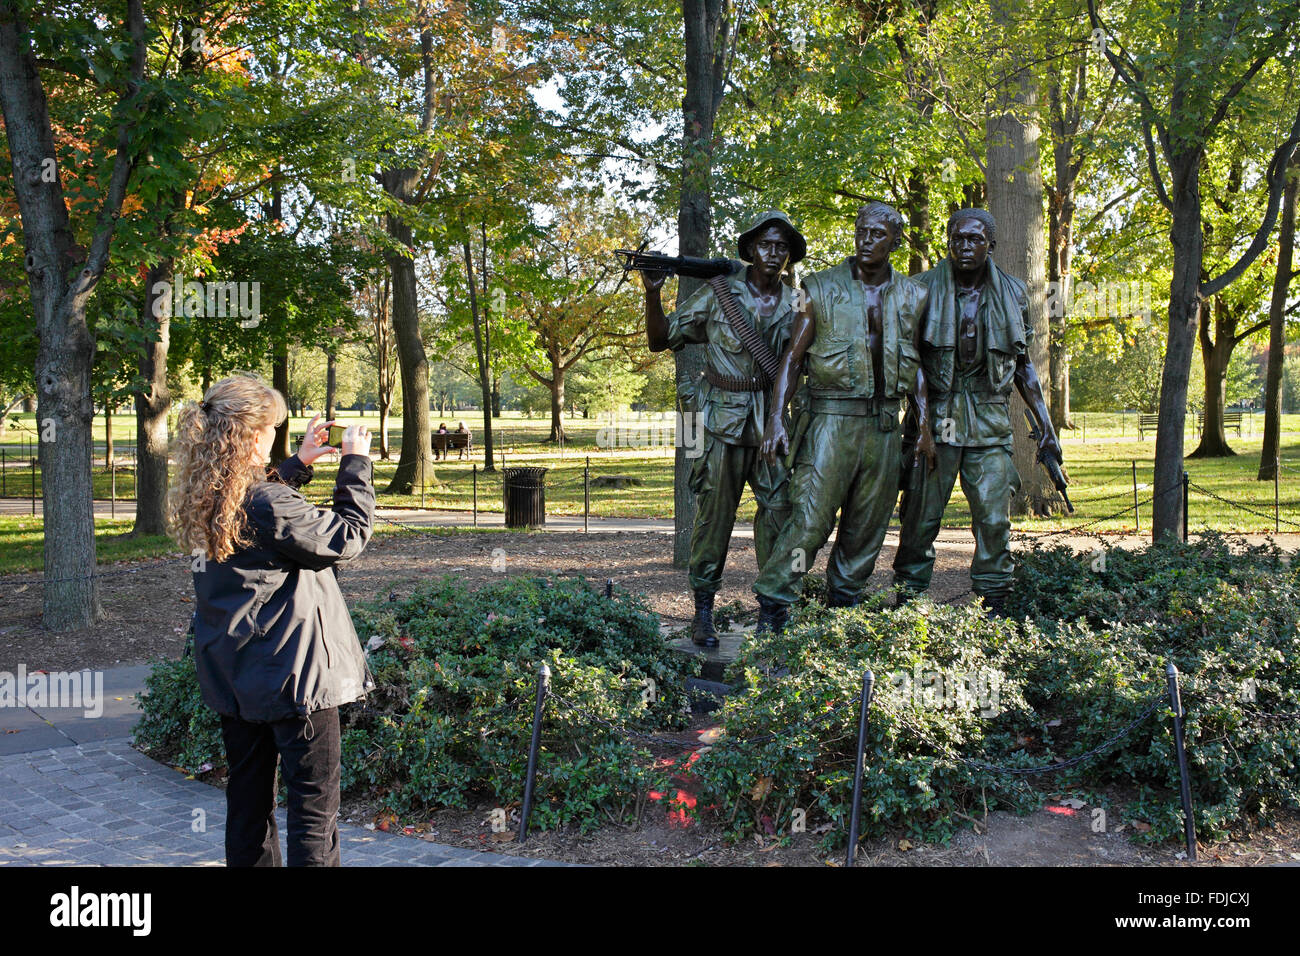 Washington D.C., USA, visitor photographs the sculptural group Three Servicemen - Stock Image